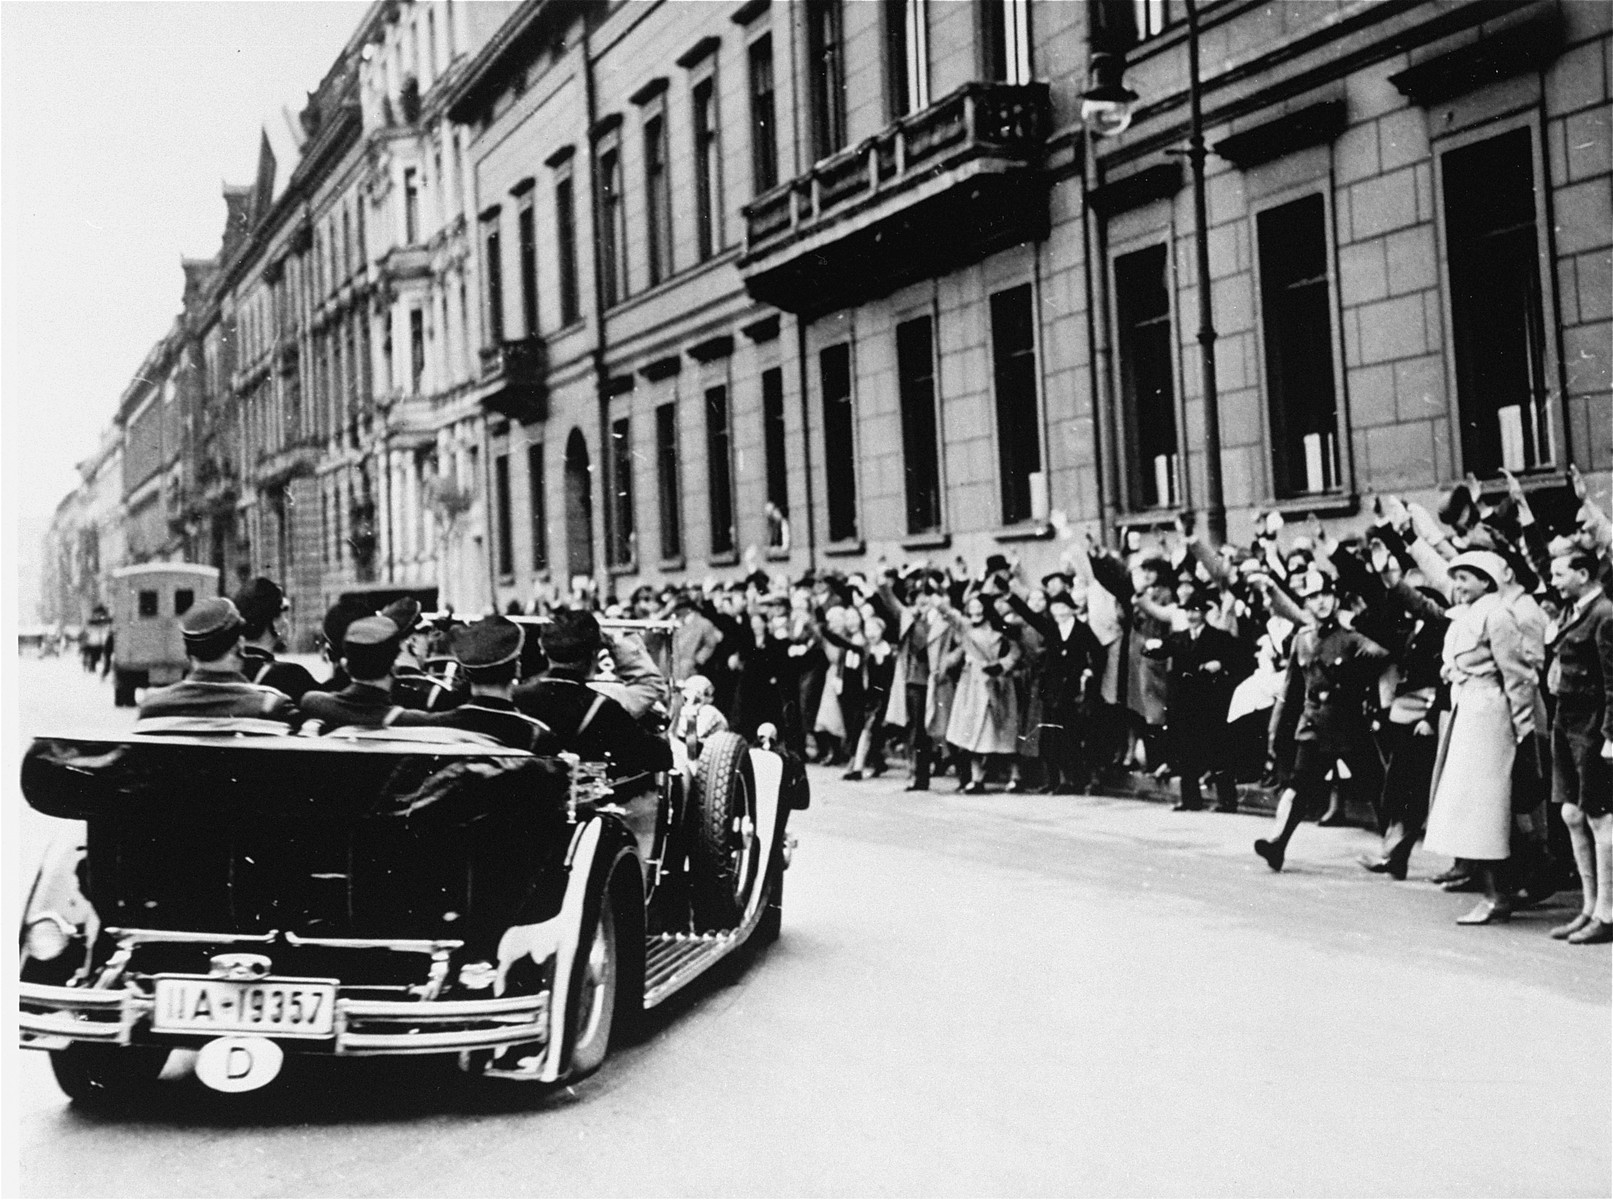 Cheering Berliners greet Adolf Hitler in front of the chancellery as he travels to the Kroll Opera House for the opening of the first working session of the Reichstag two days after the ceremonial opening in Potsdam.